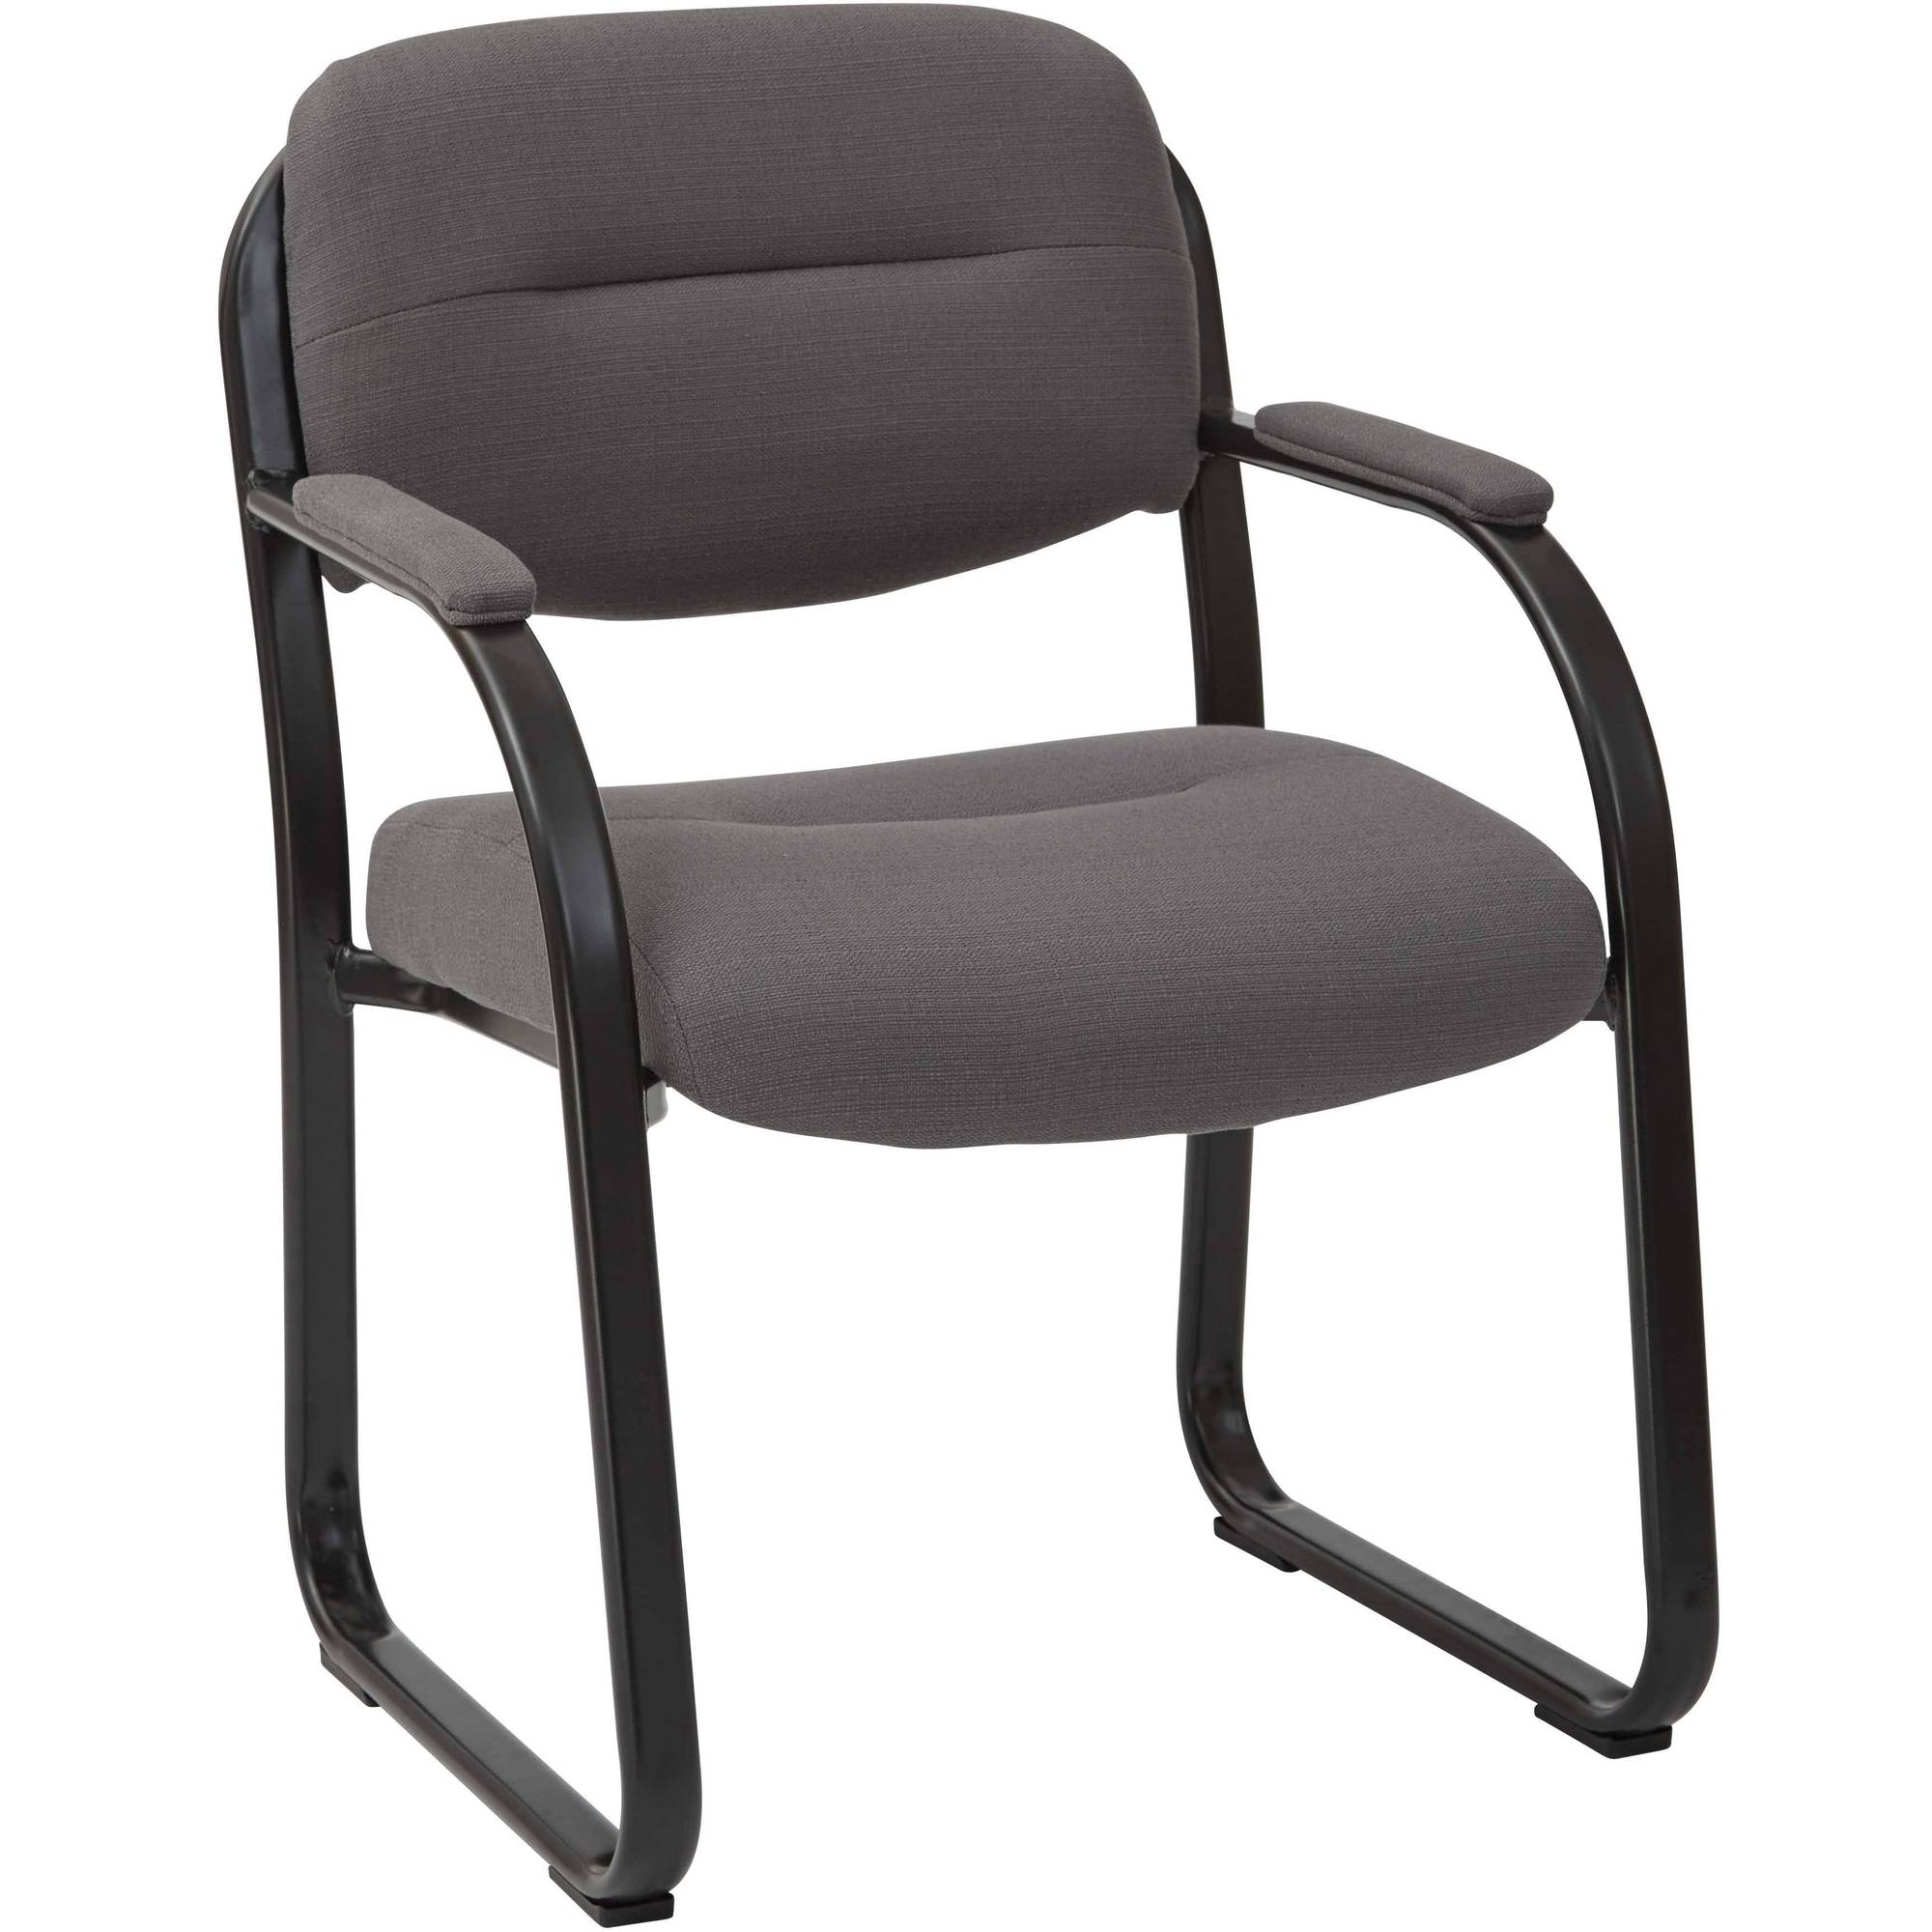 Deluxe Fabric Visitors Chair with Sled Base, Padded Arms and Heavy Duty Metal Sled Base, Multiple Colors